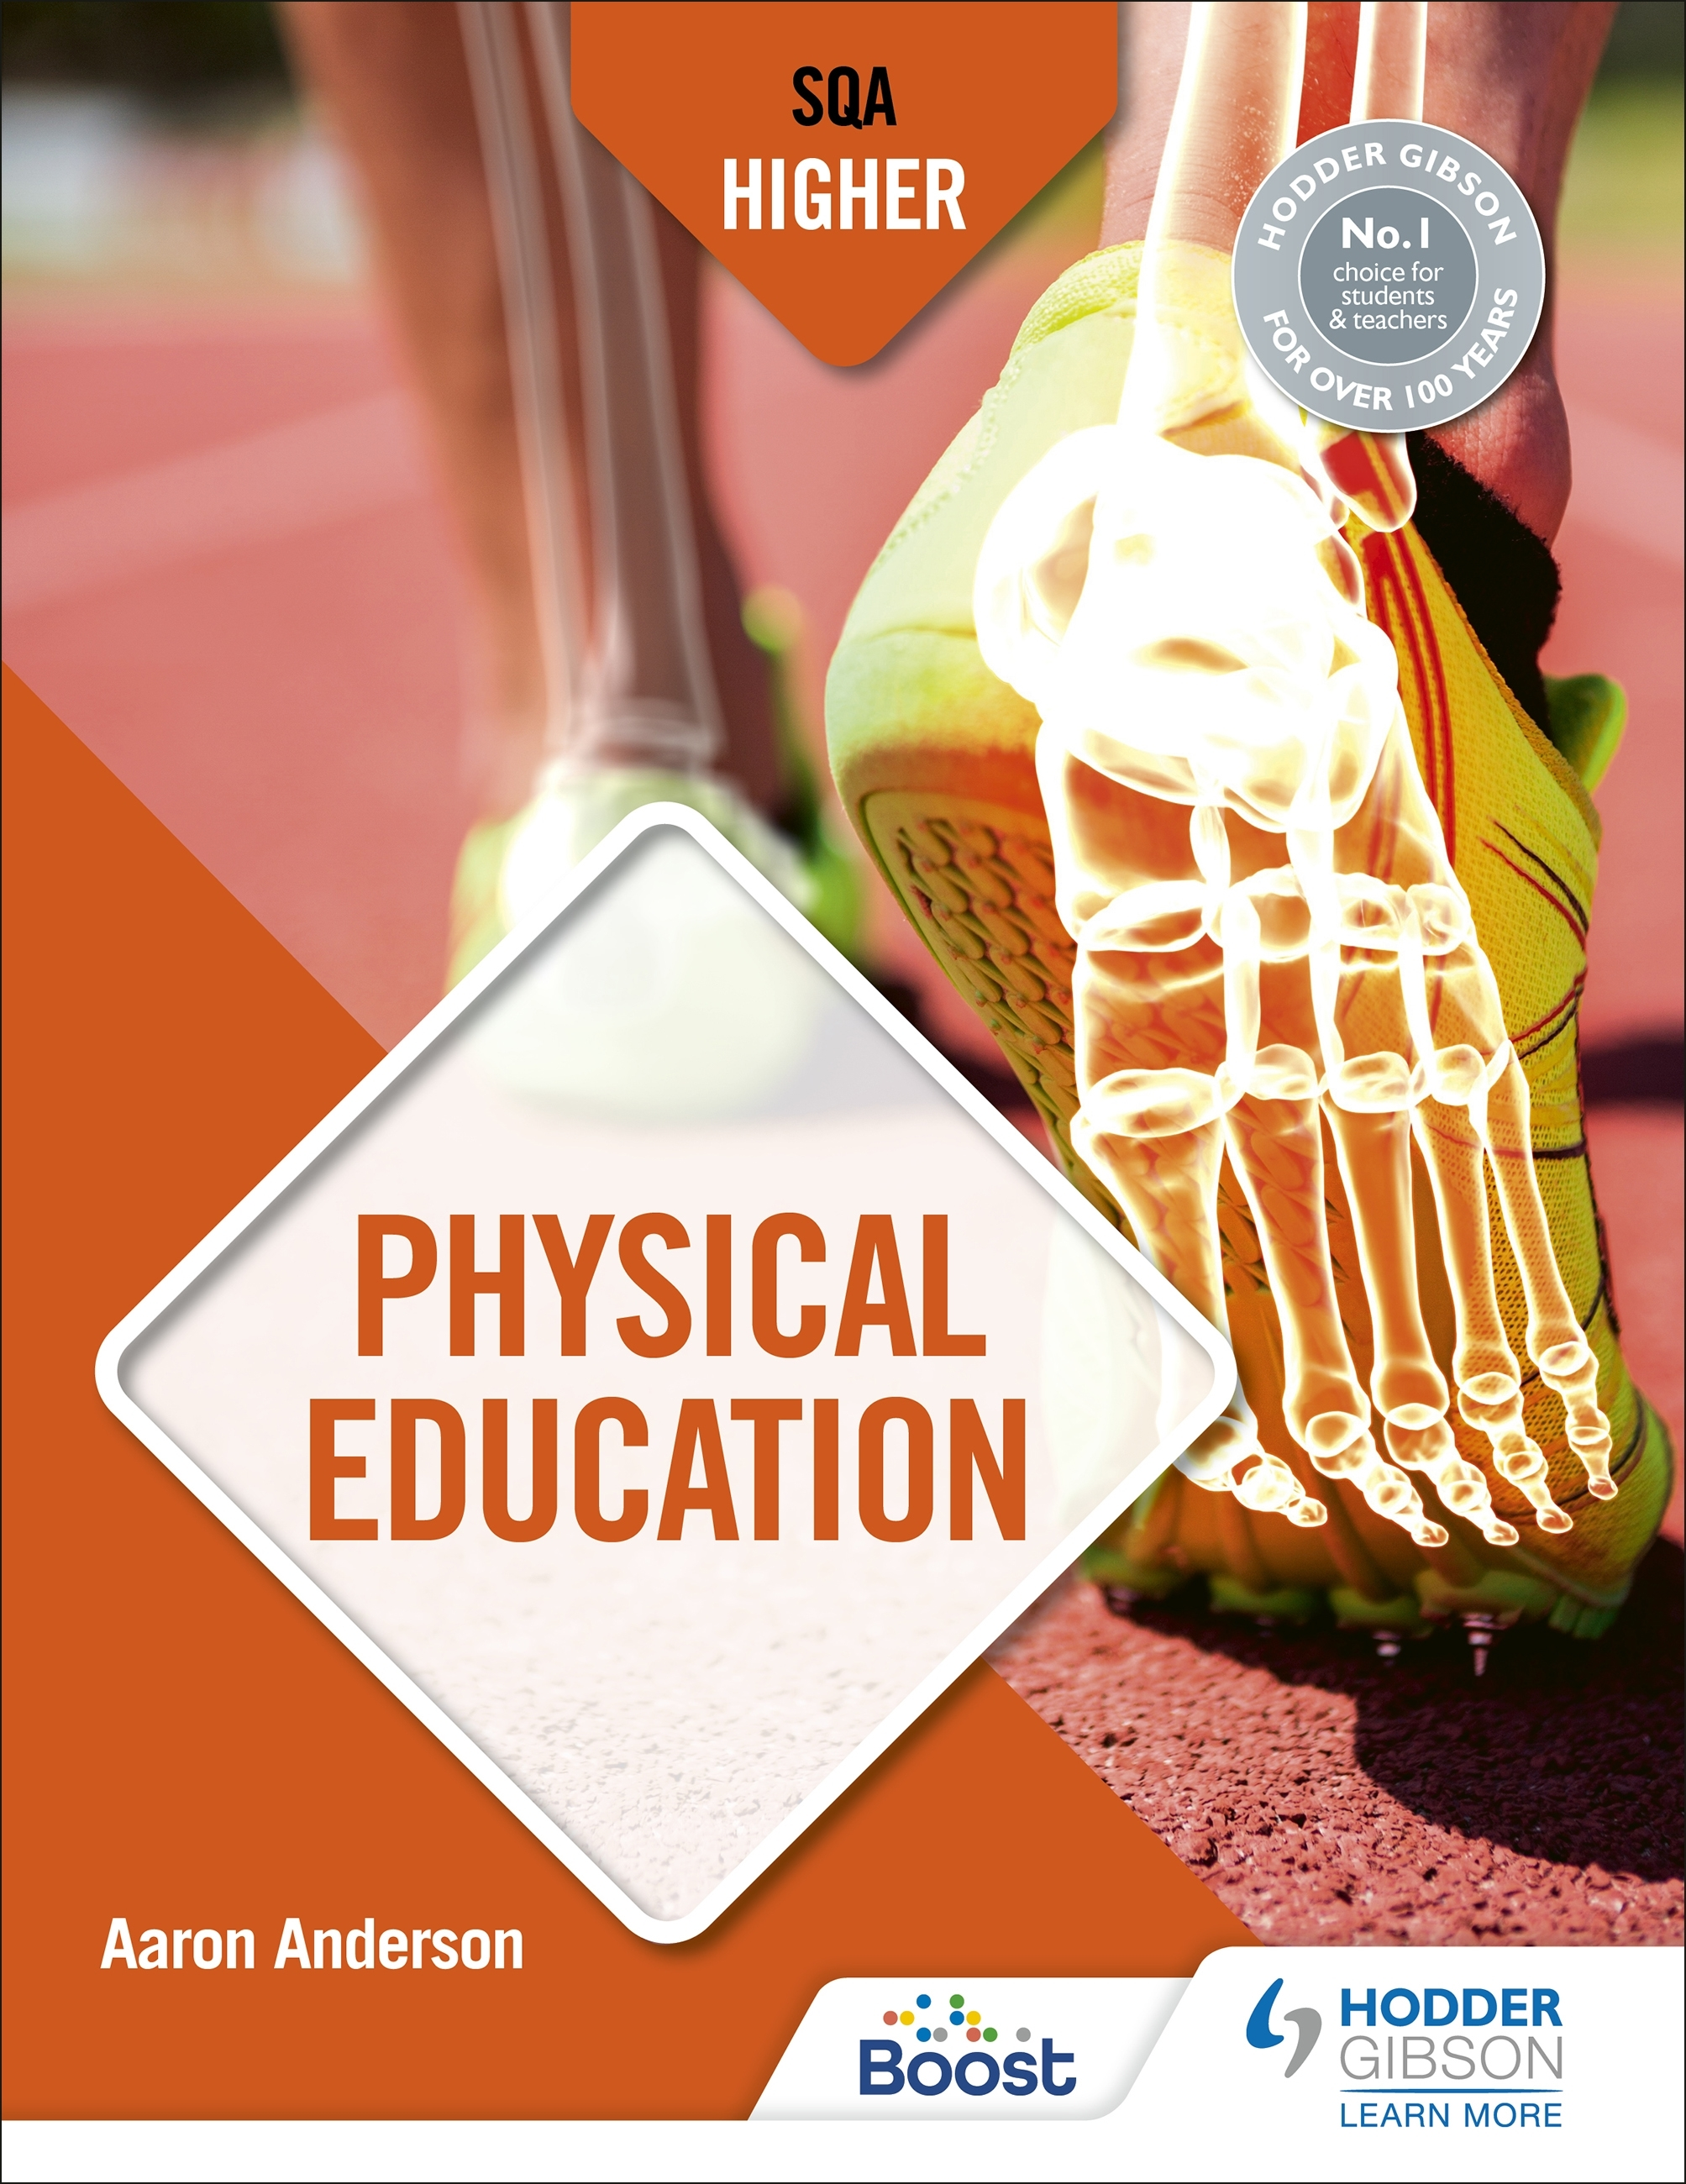 SQA Higher Physical Education